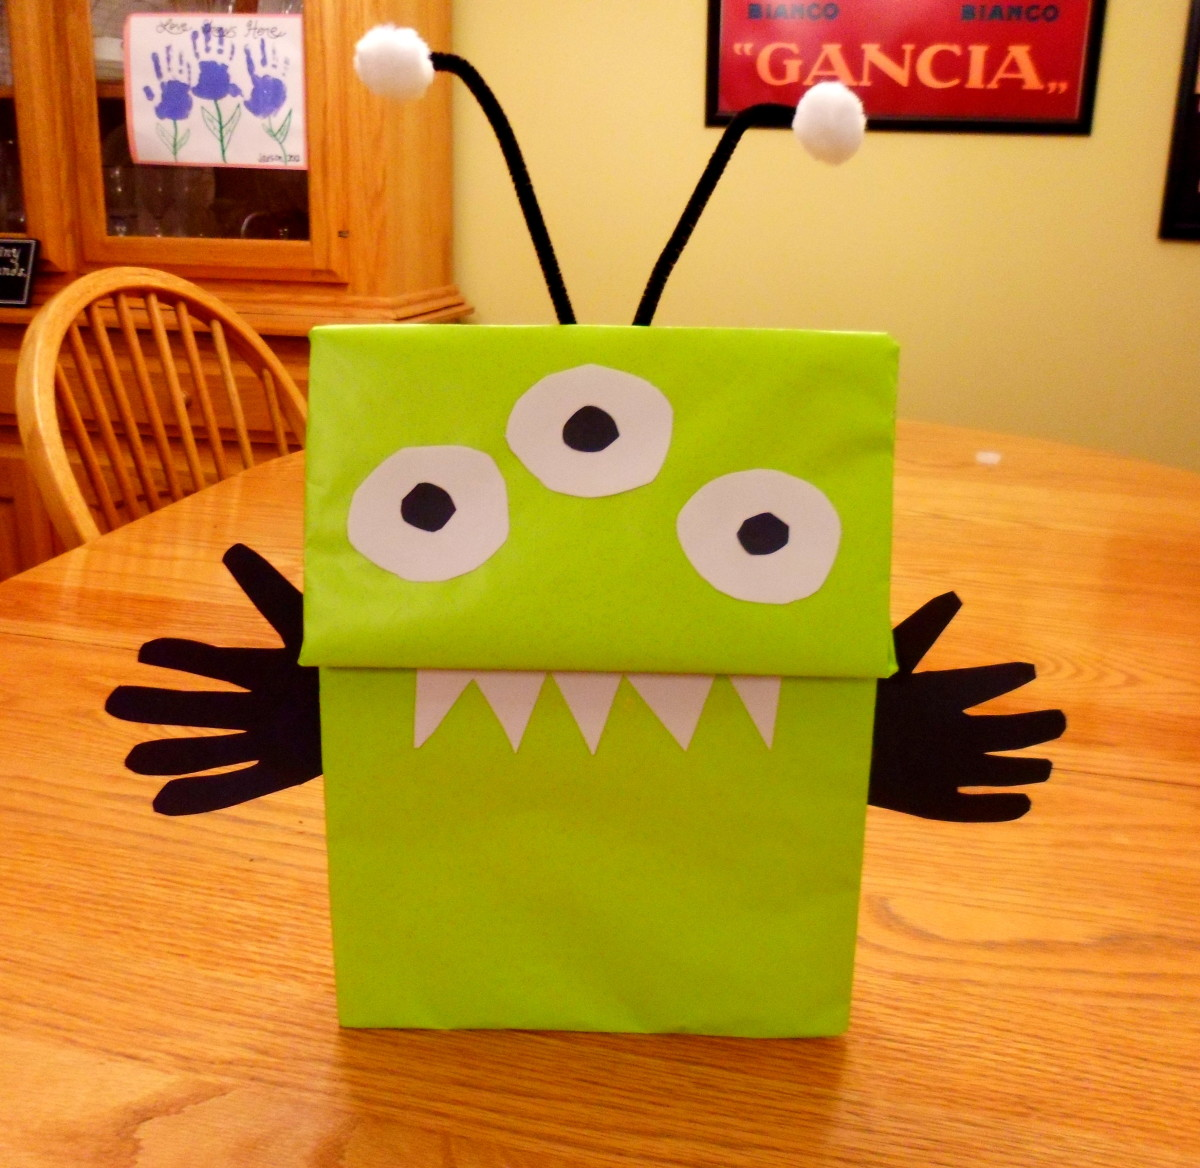 Our finished alien hand puppet.